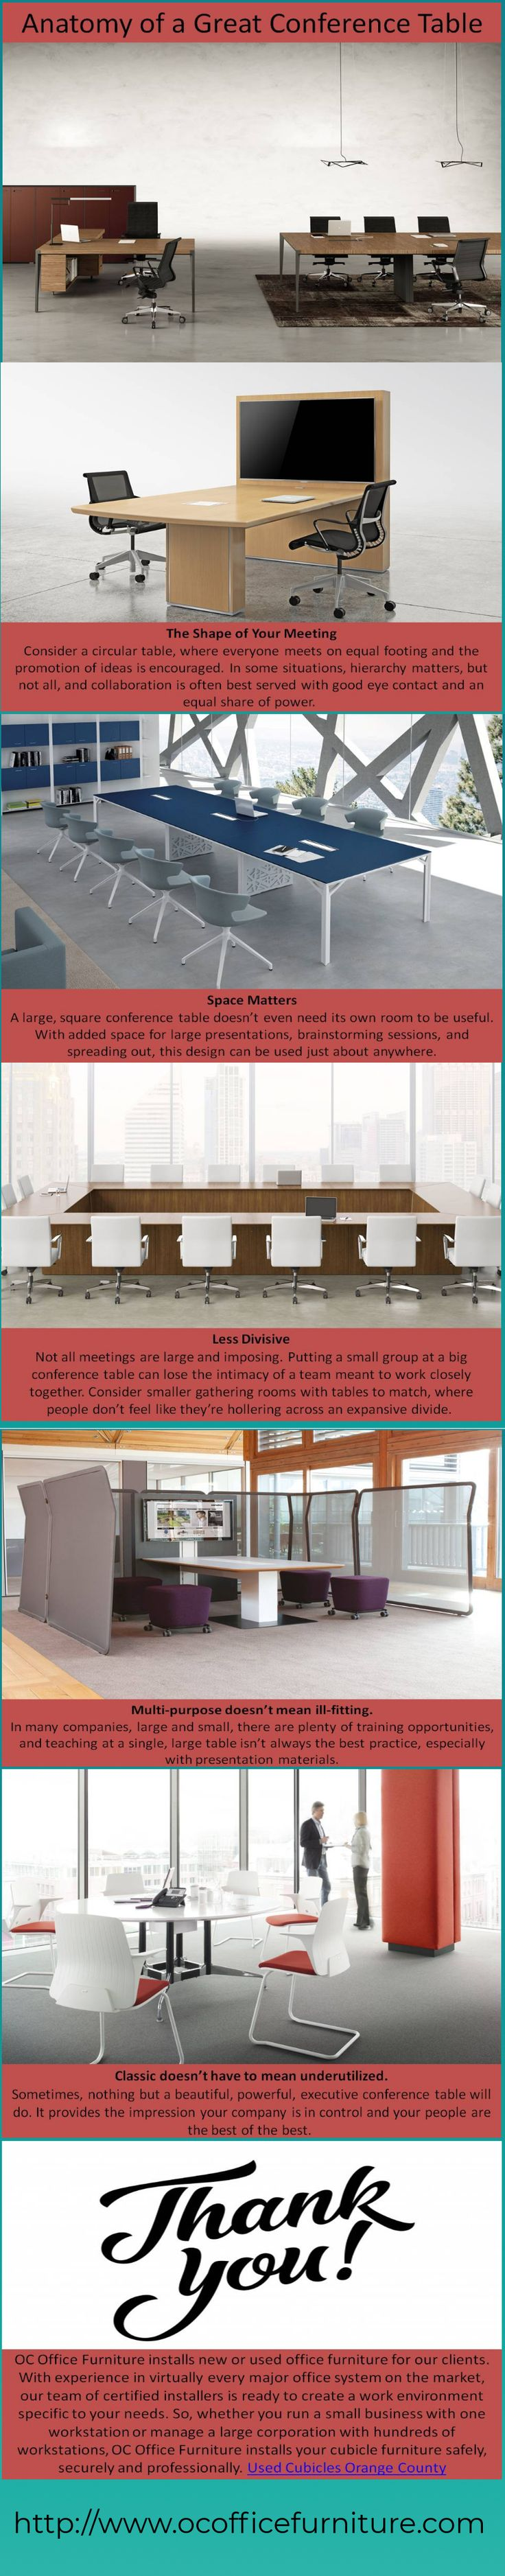 collaborative office collaborative spaces 320. OC Office Furniture Installs New Or Used For Our Clients. With Experience In Virtually Every Major System On The Market, Collaborative Spaces 320